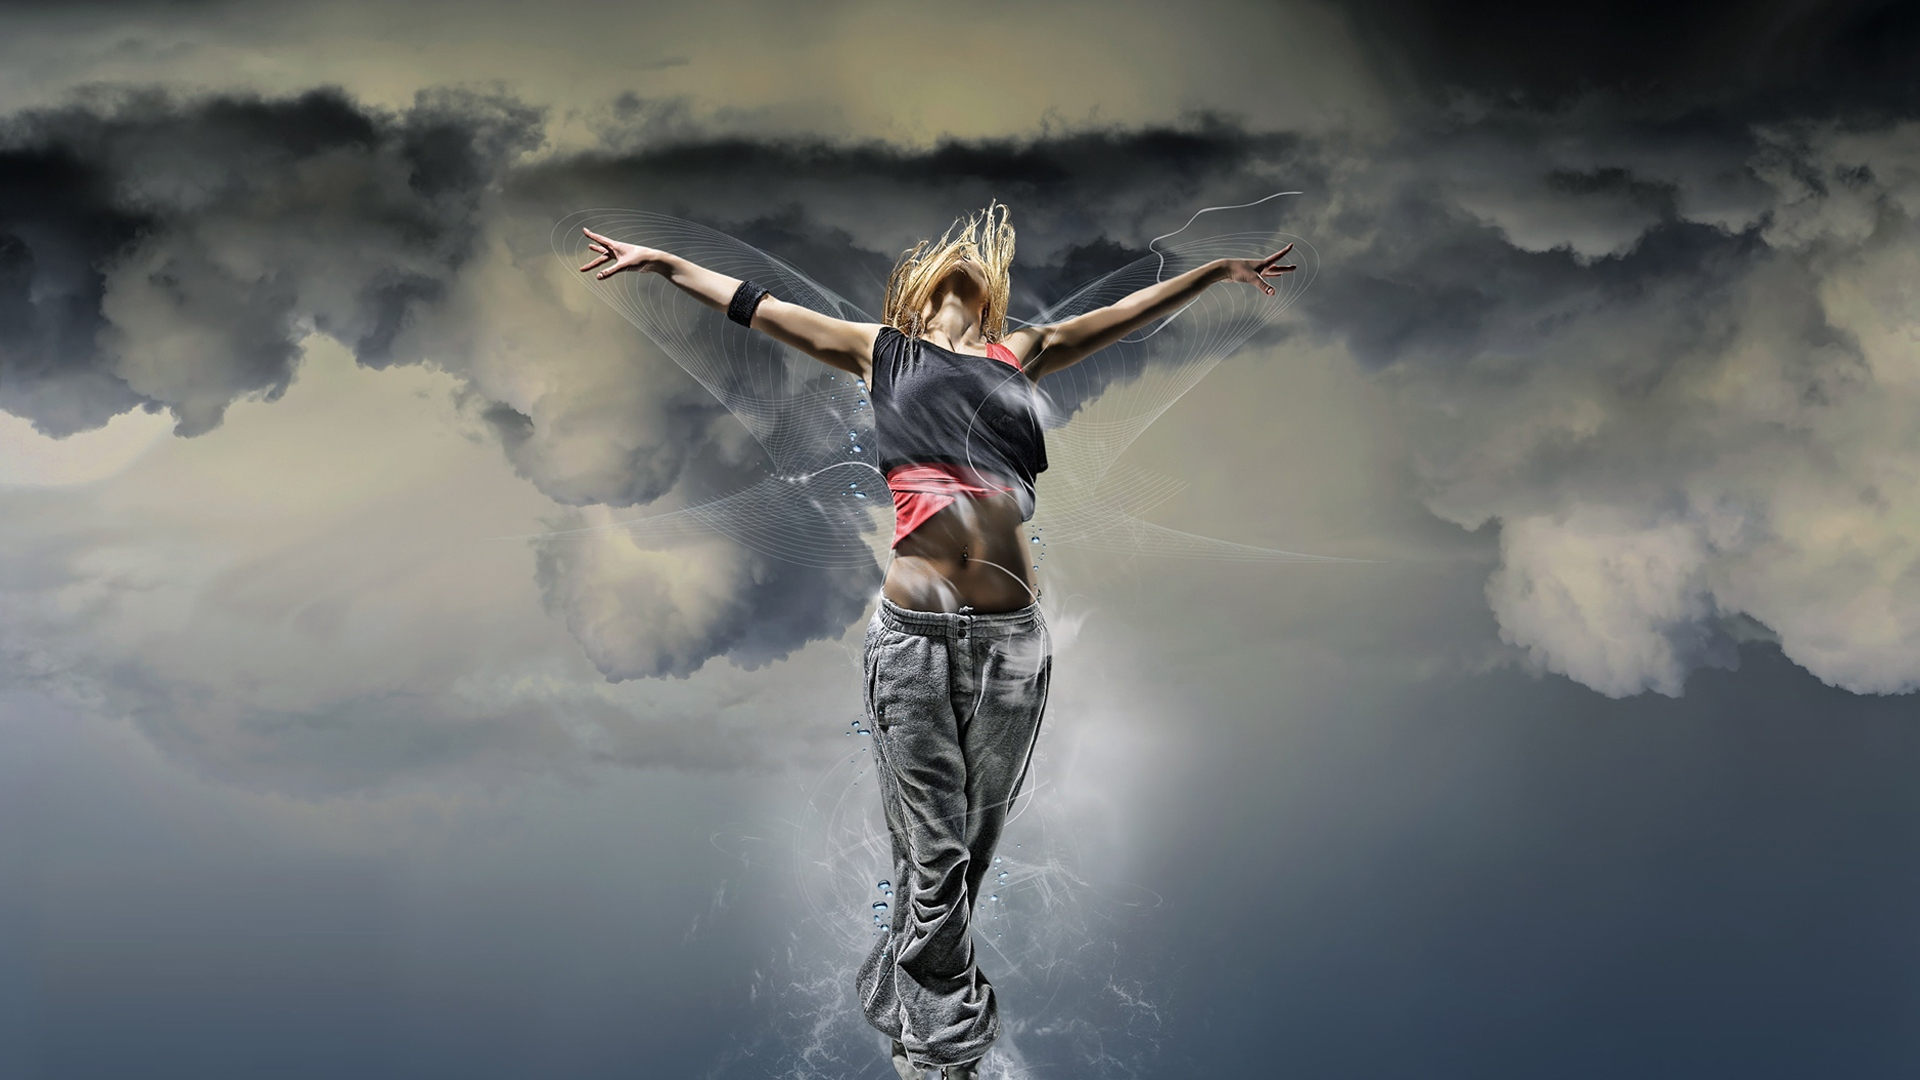 download wallpaper 1920x1080 girl, dance, fly, sky, clouds full hd